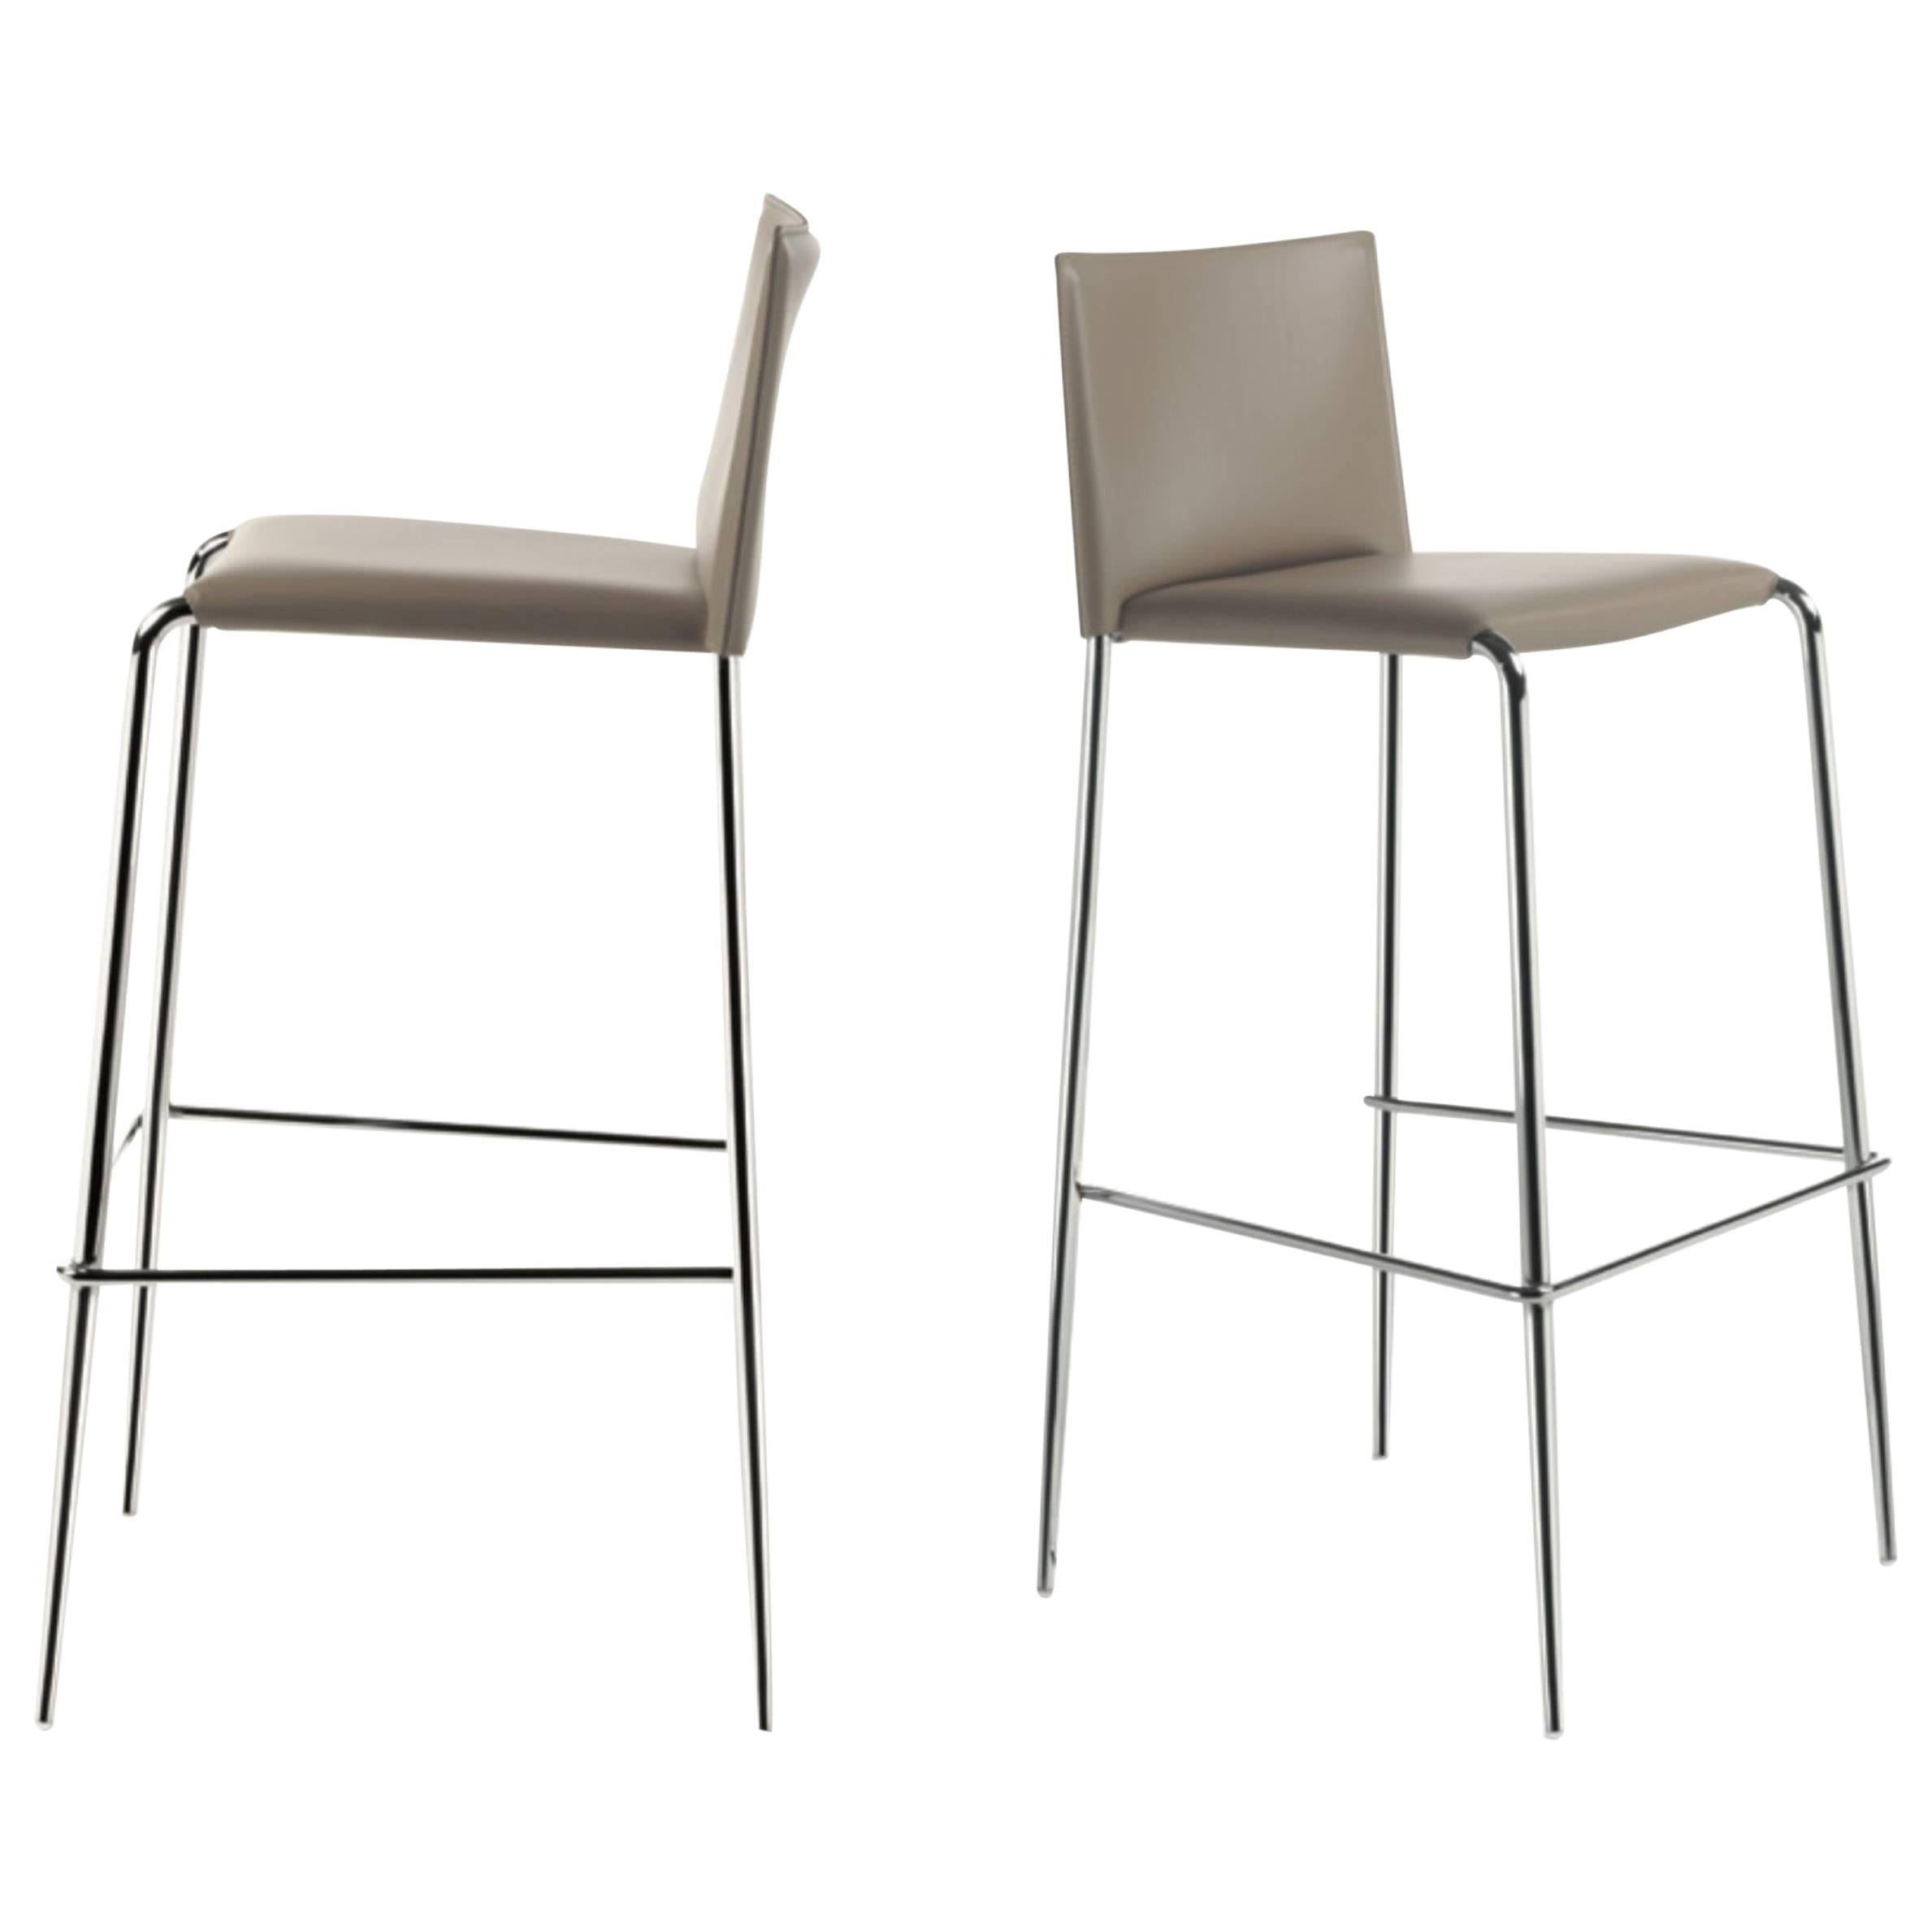 Italian Modern Bar Stools Leather And Chrome Or Painted Black Or White For  Sale